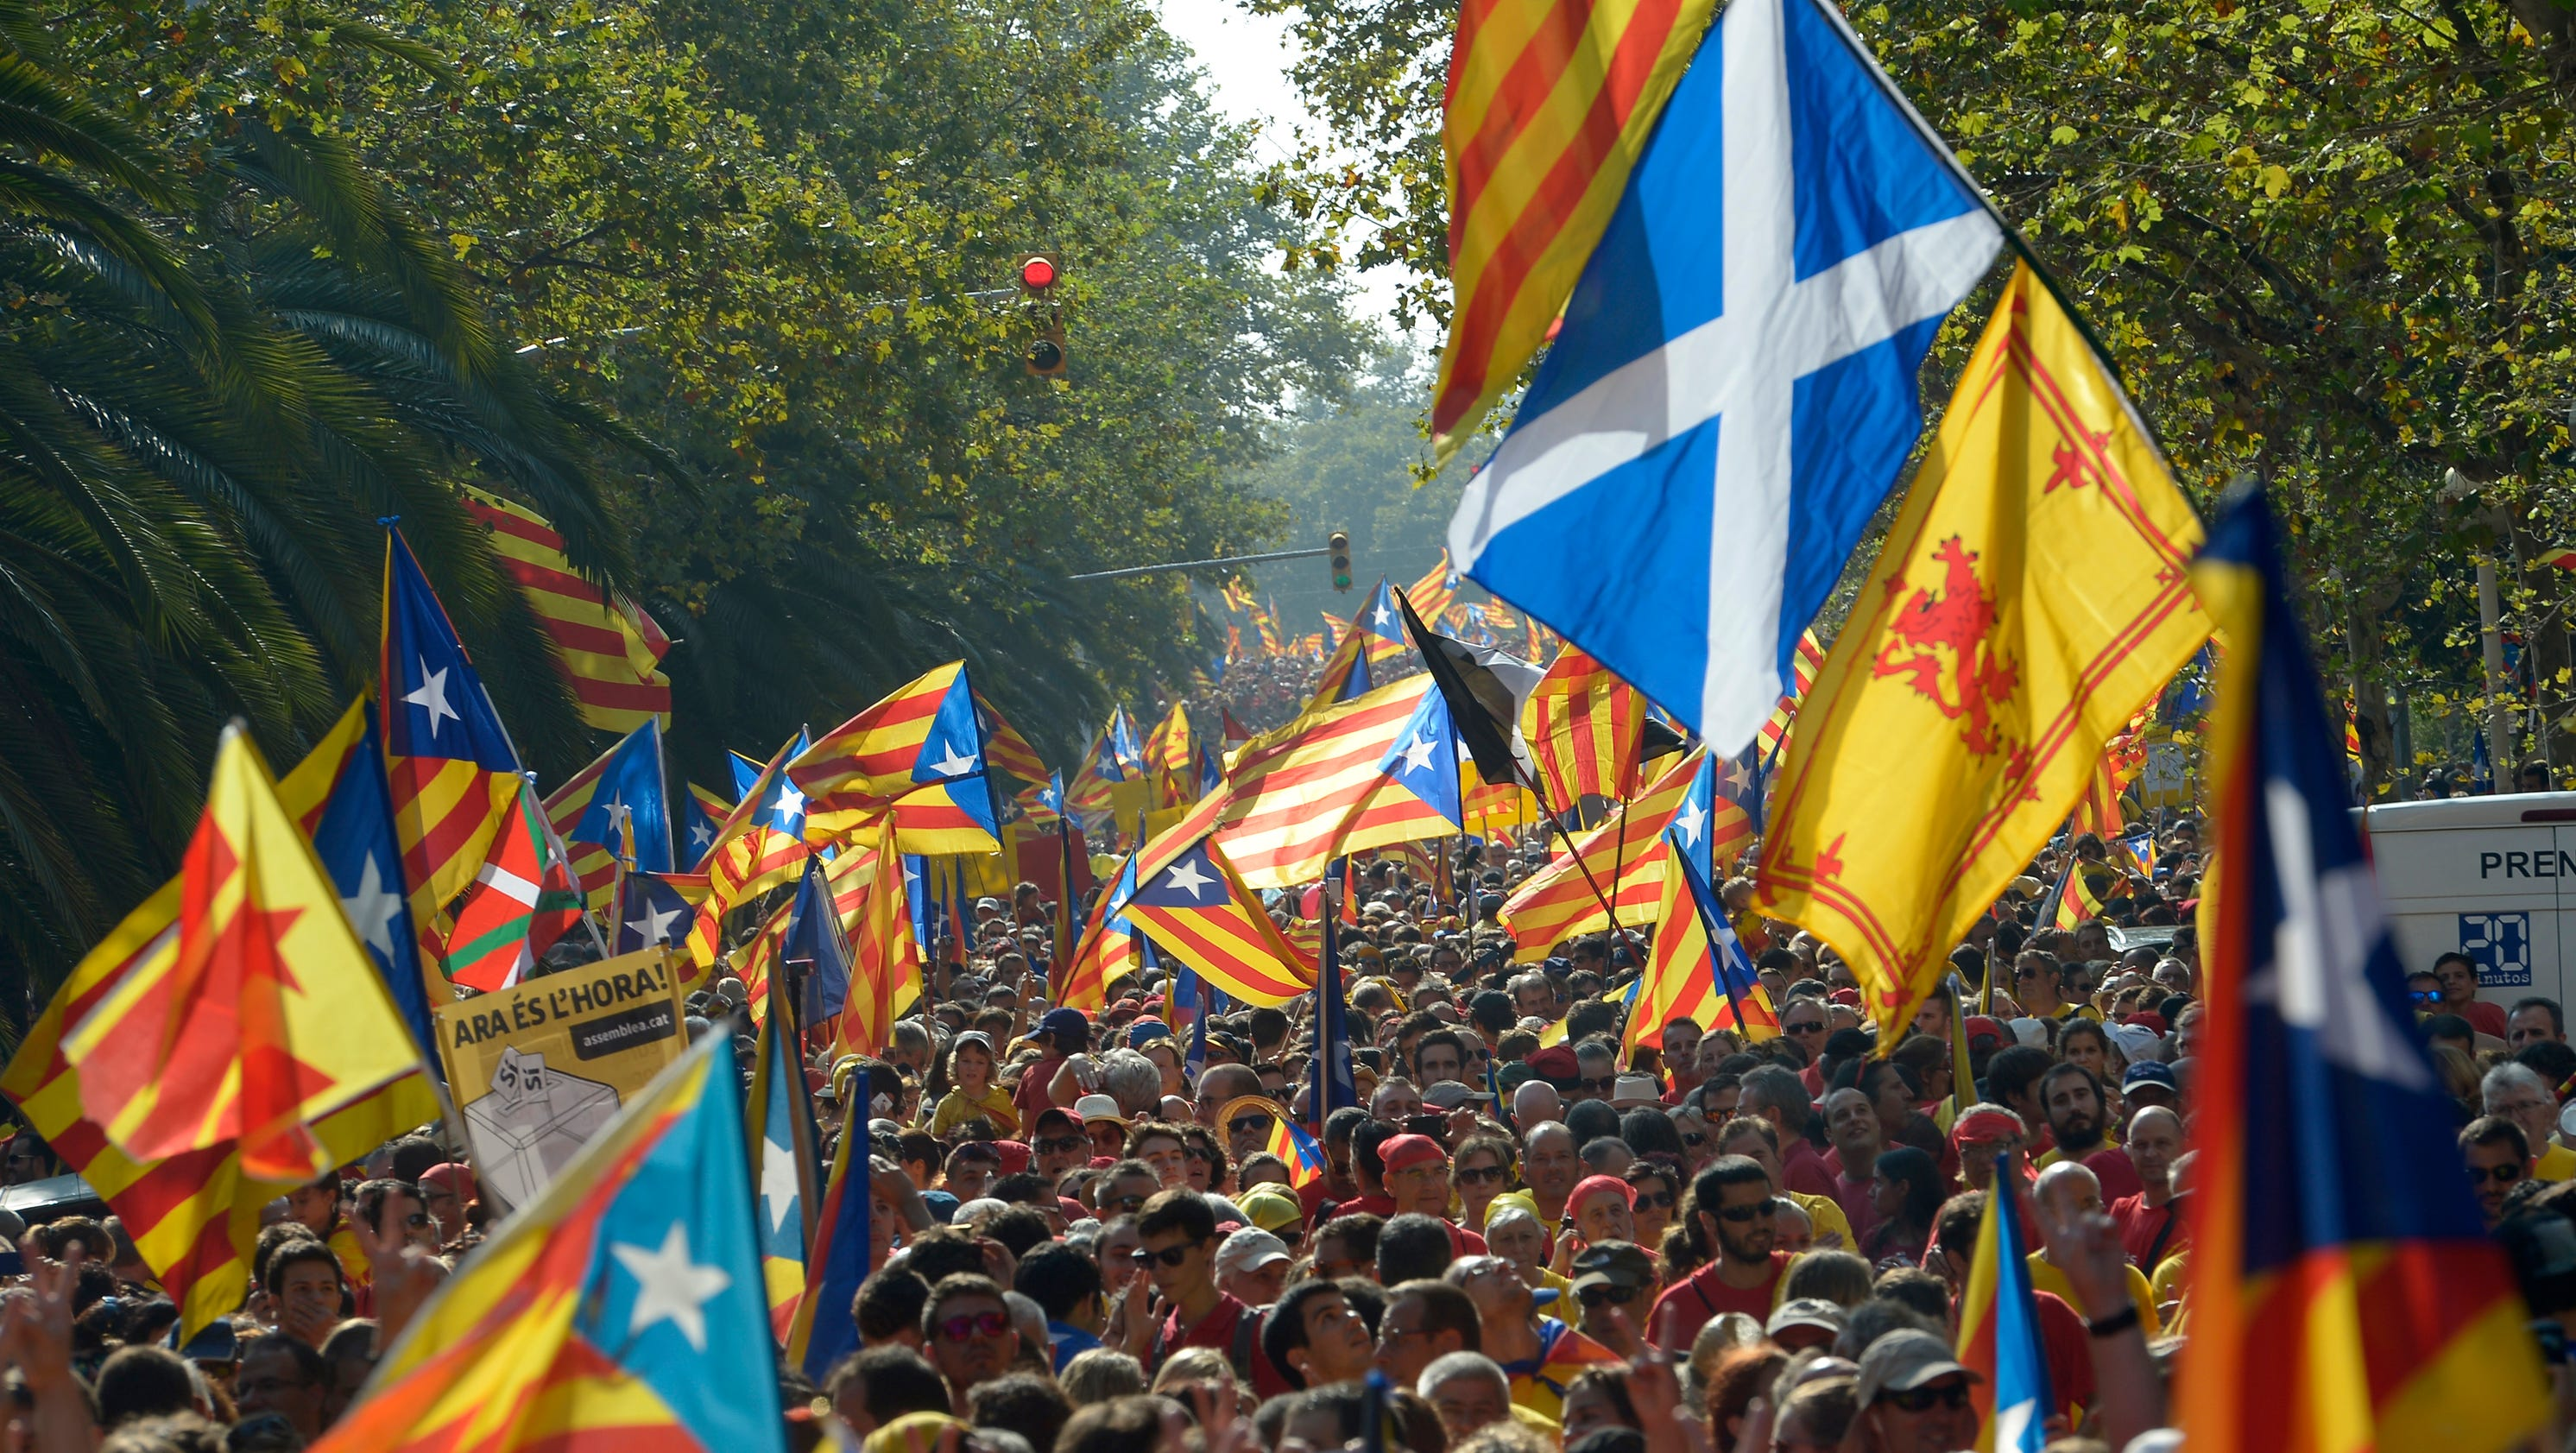 Secessionist movements learn lessons from scotland vote - Firefly barcelona ...